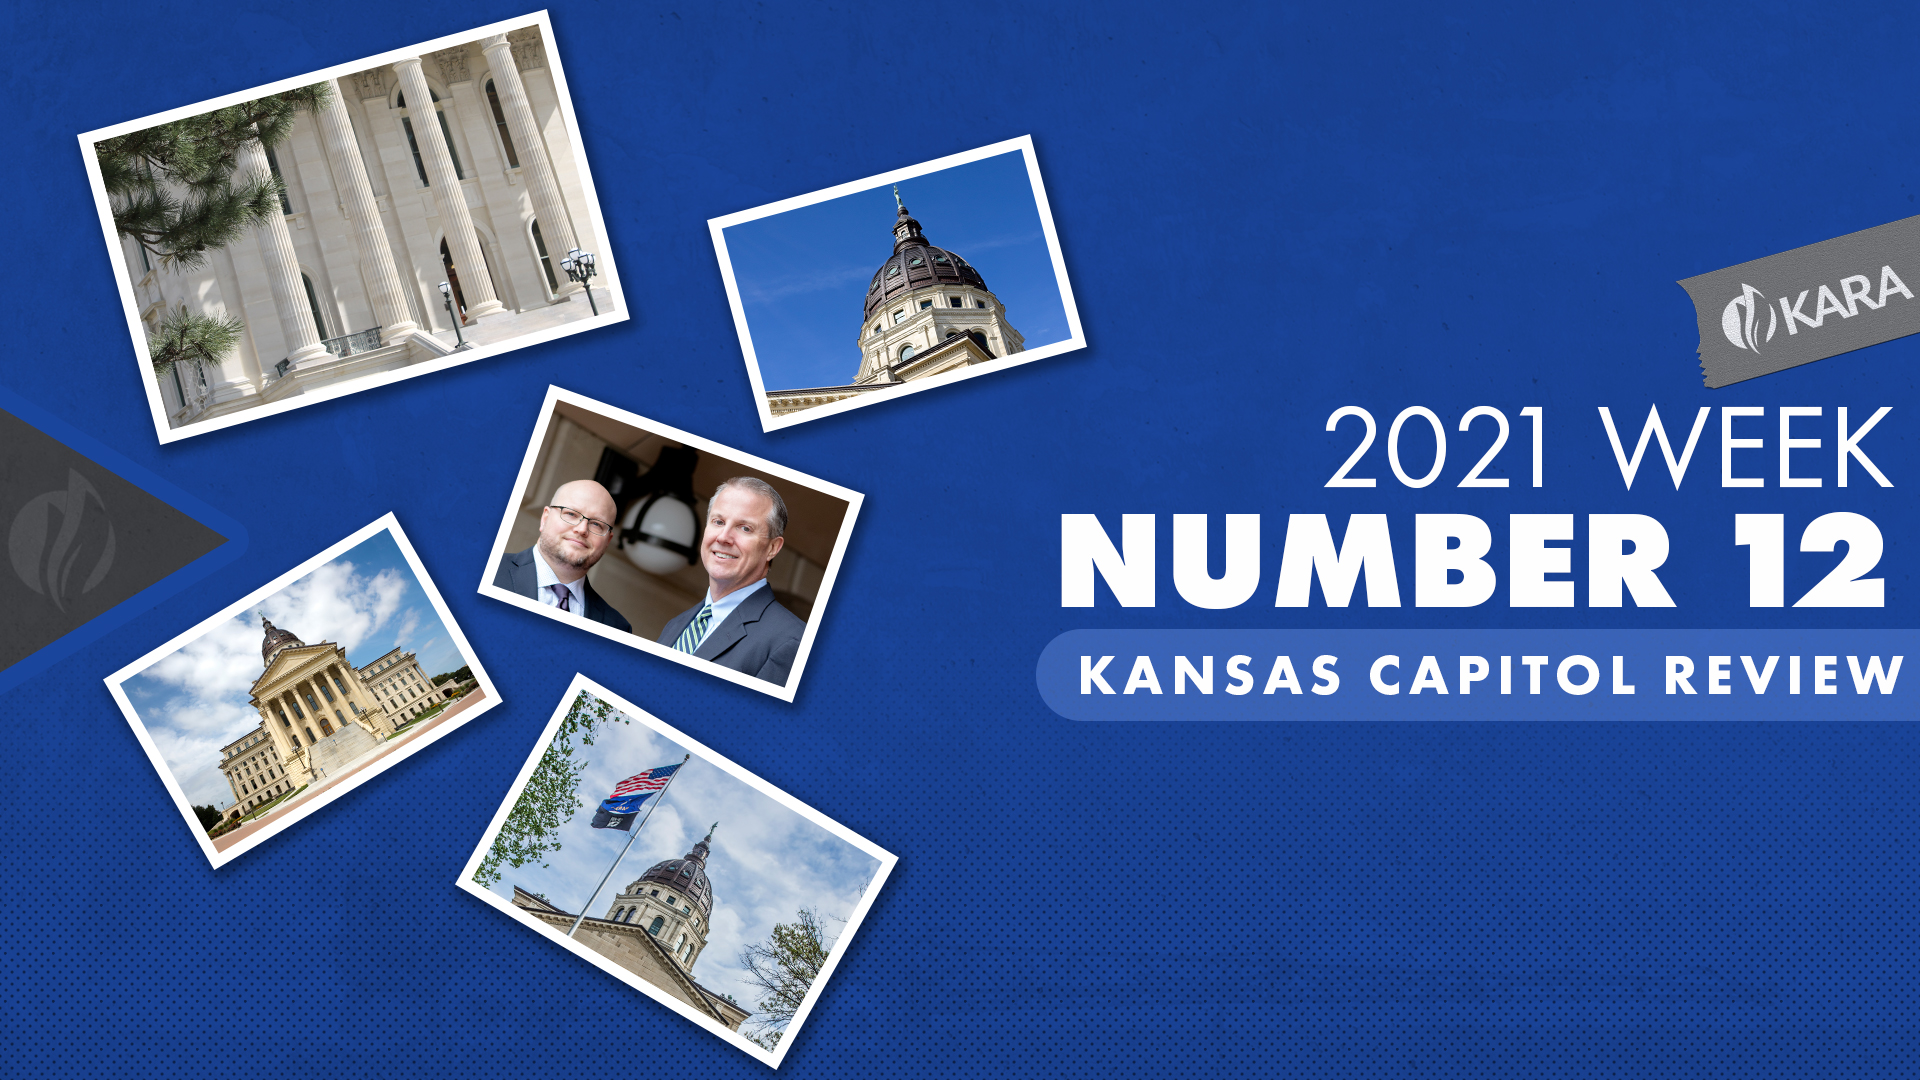 2021 Kansas Capitol Review - Week 12